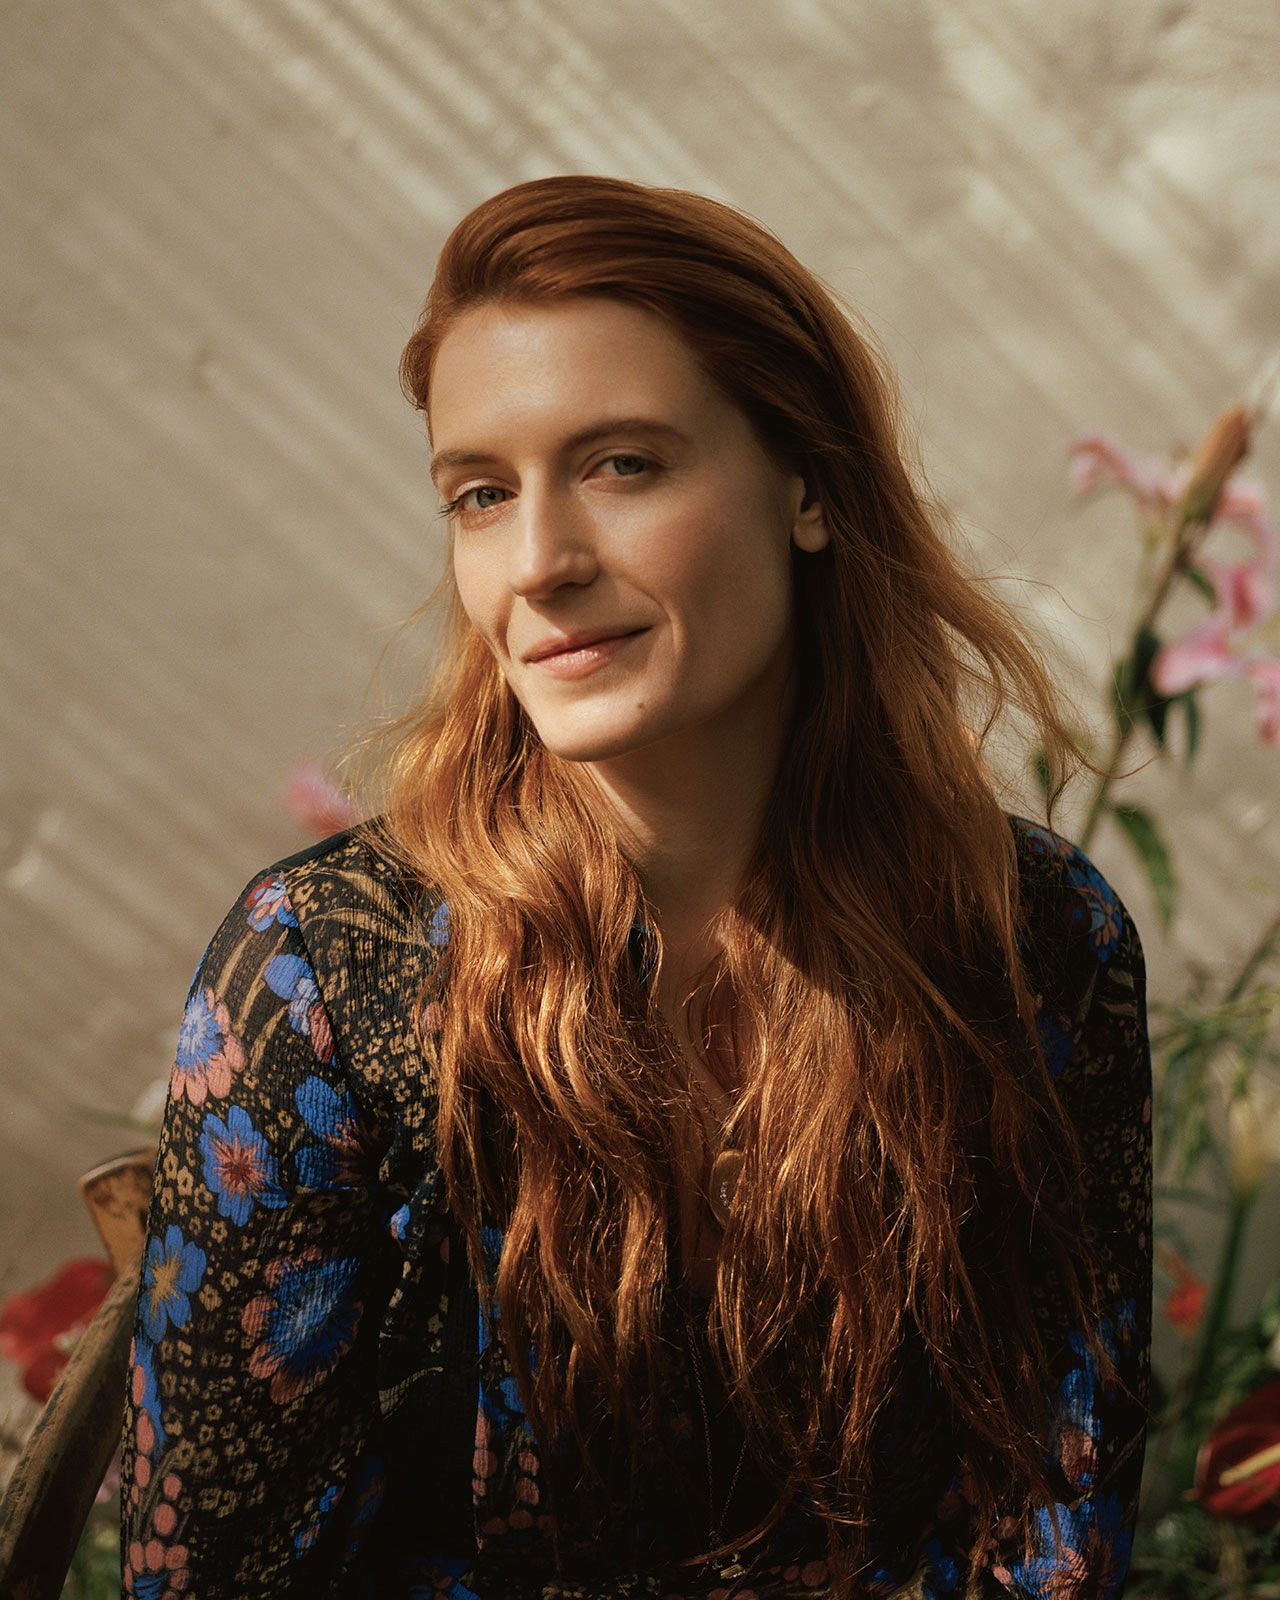 Nytt från Florence and the Machine